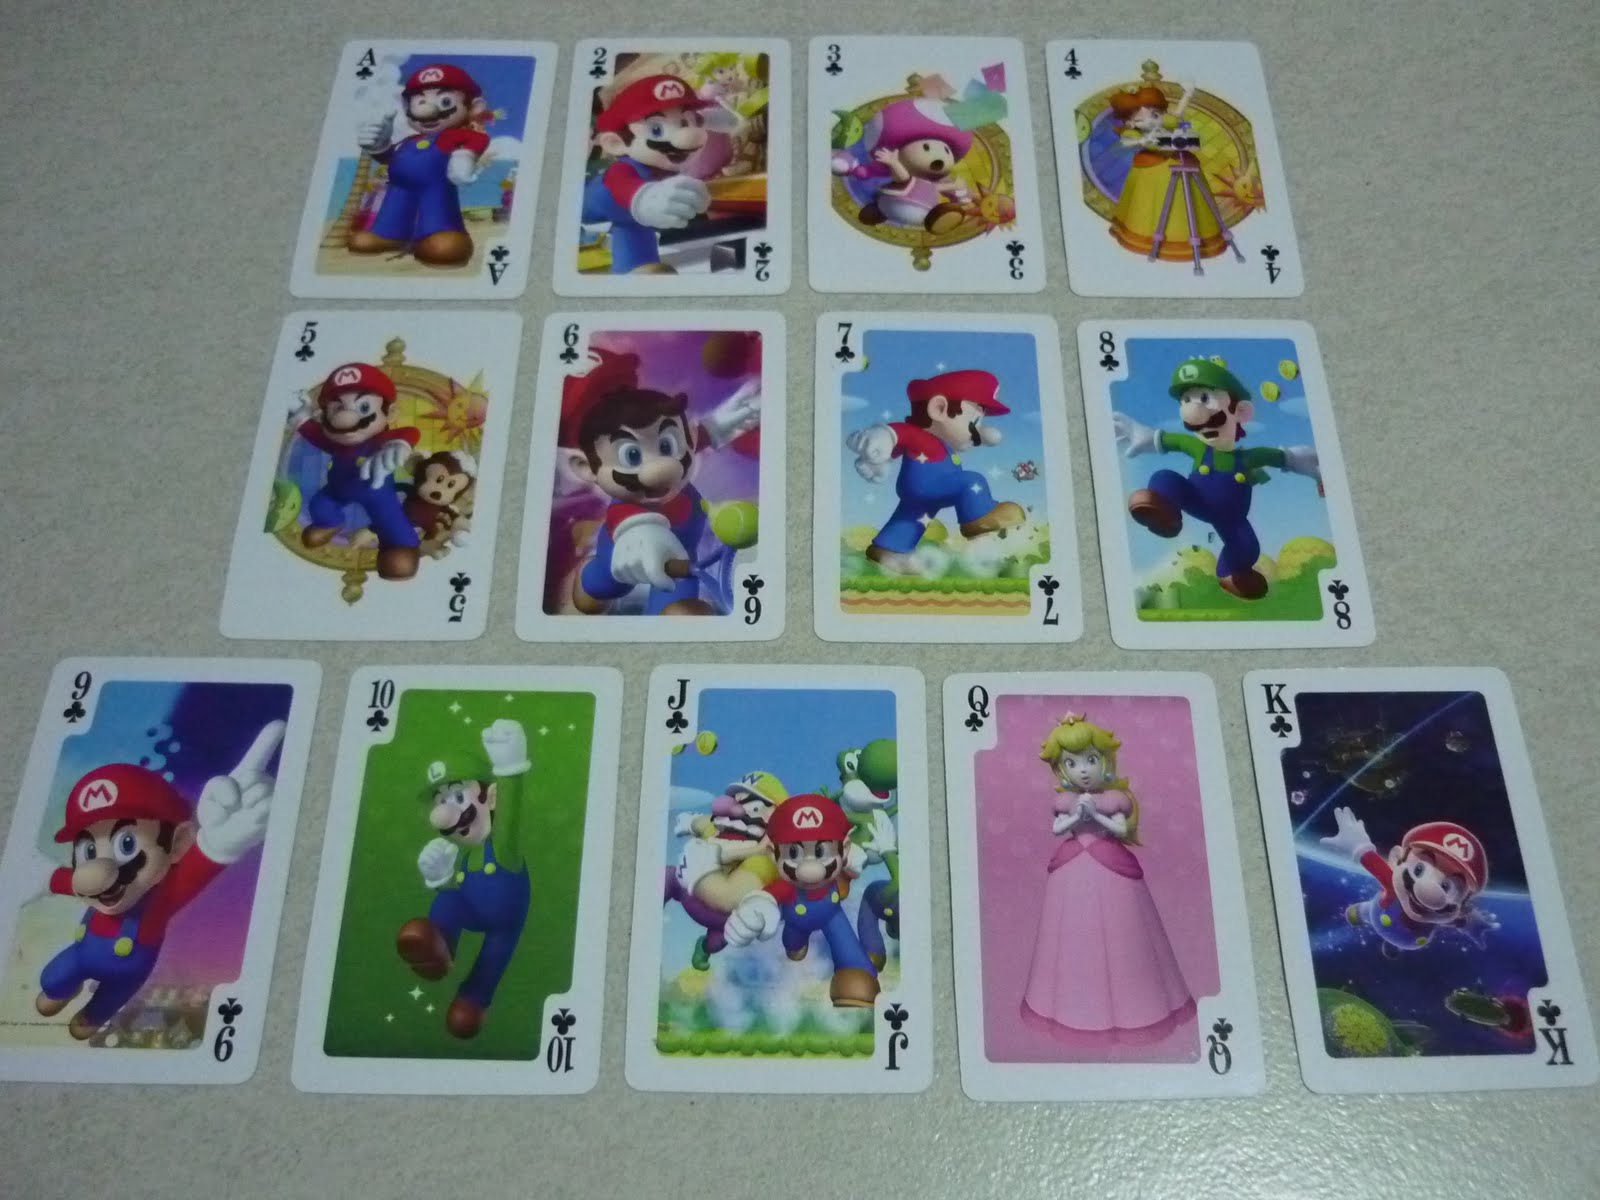 Disney Anime Toys Dat Super Mario Poker Cards